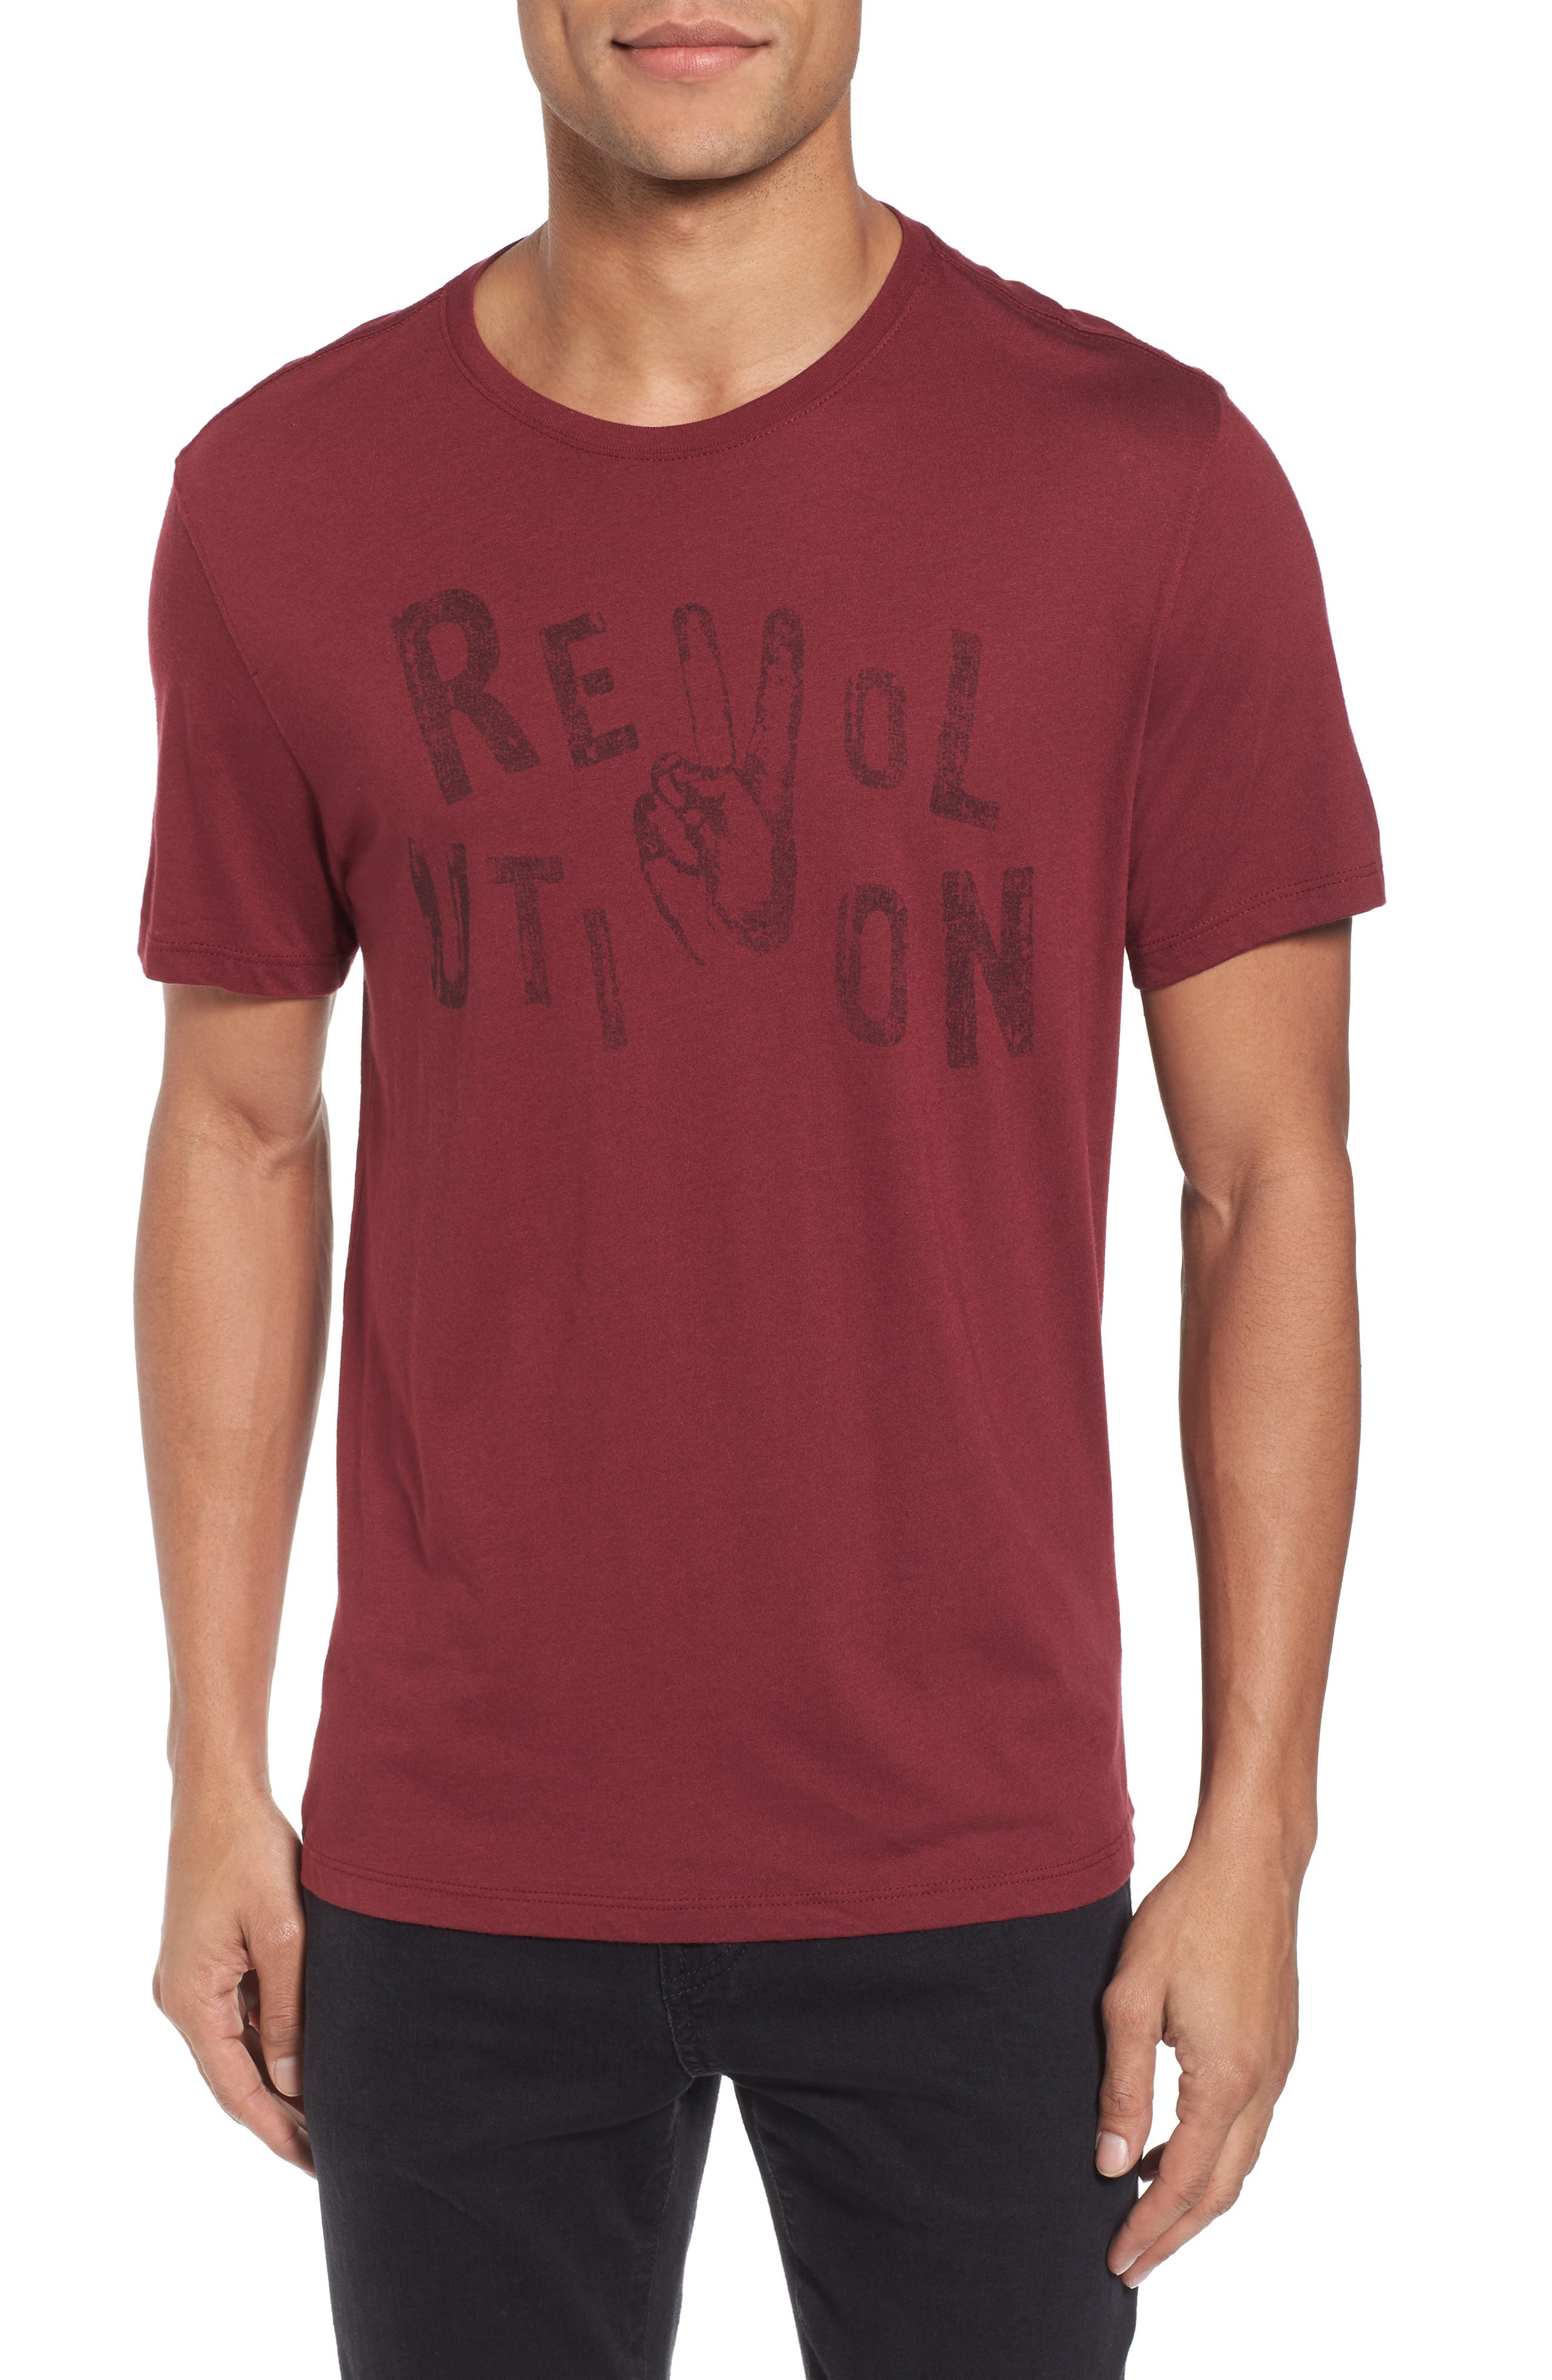 Revolution Graphic T-Shirt,                         Main,                         color, Oxblood